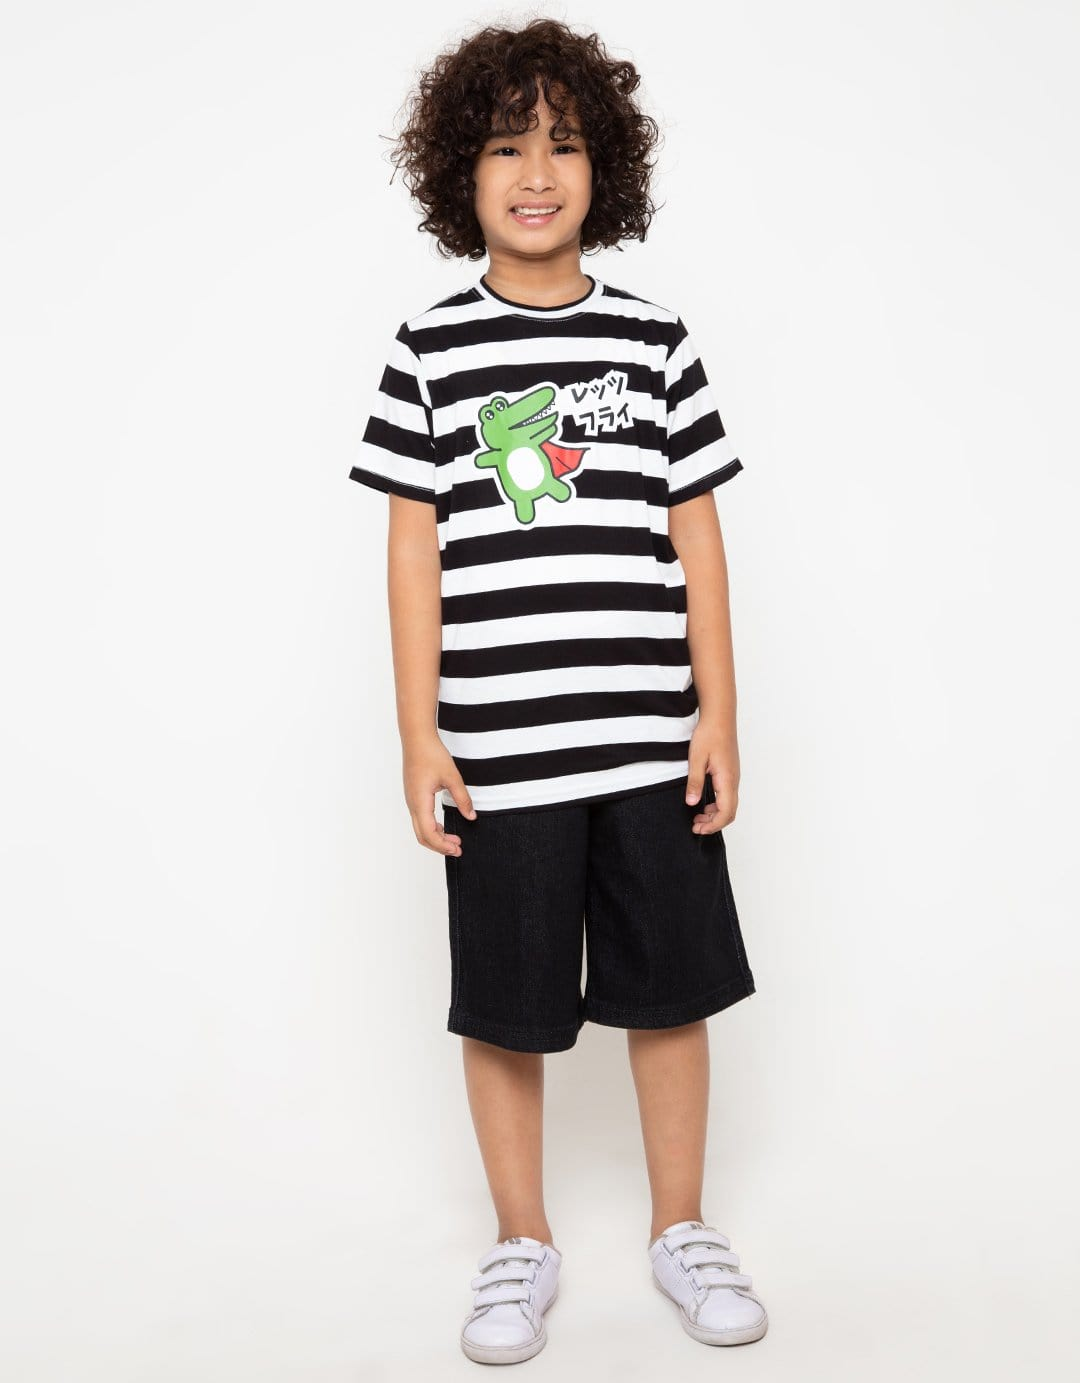 BT162 thirdday kaos anak draco superman stripe hitam putih